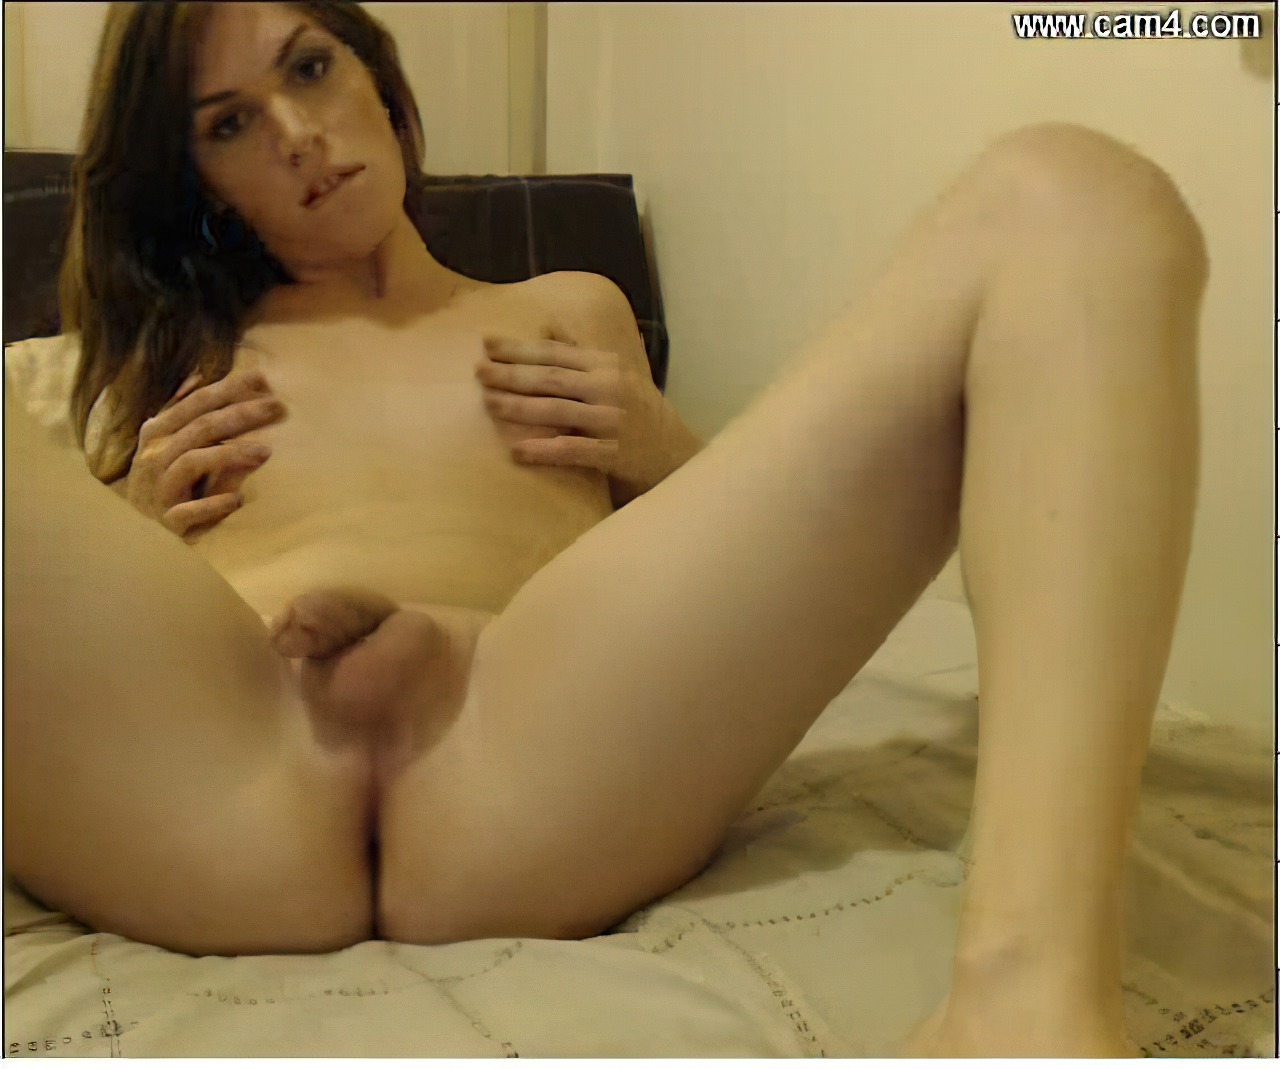 Tranny Webcam (1)